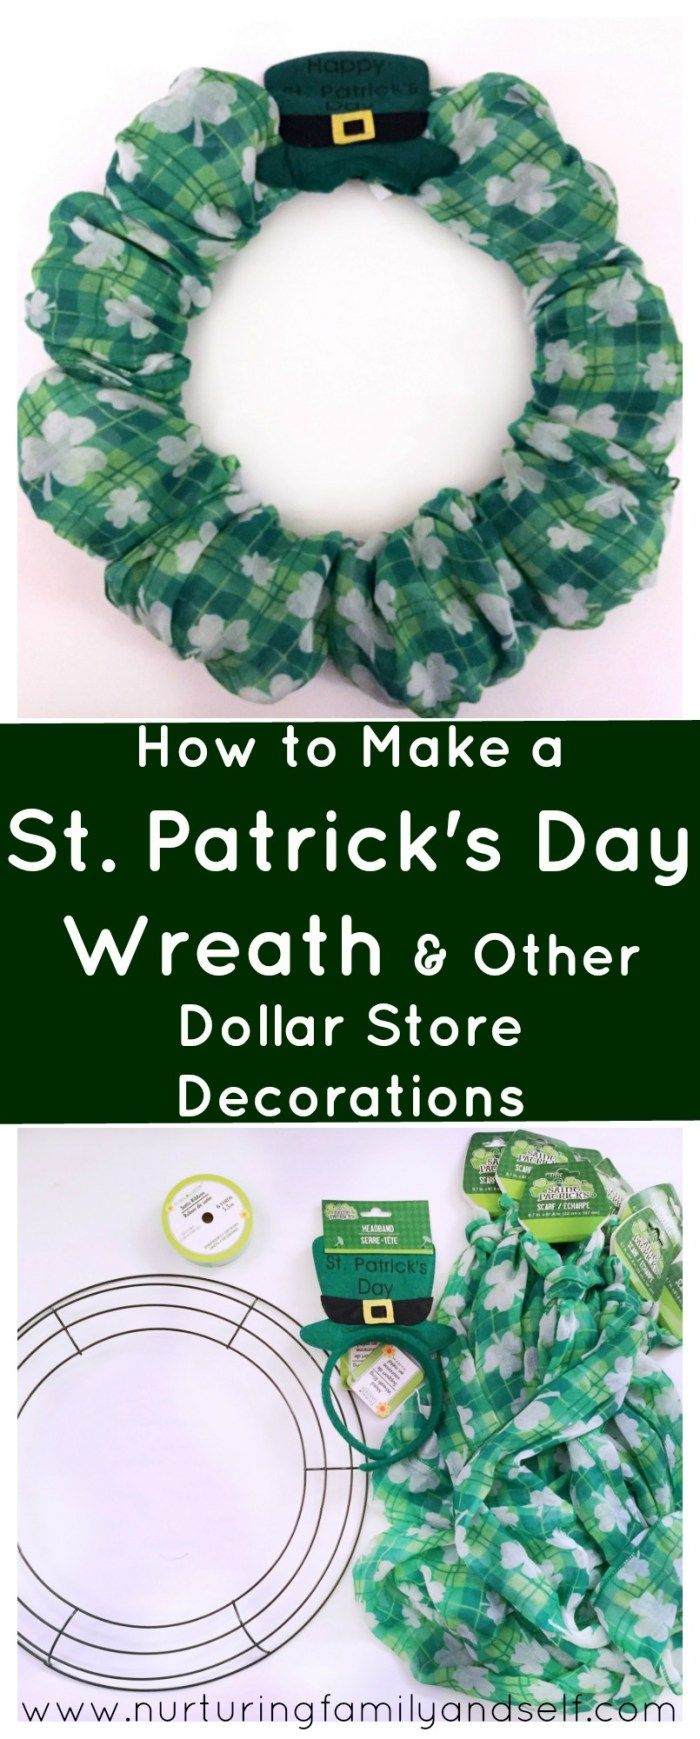 How to Make A St. Patrick's Day Wreath & Other Dollar Store Decorations